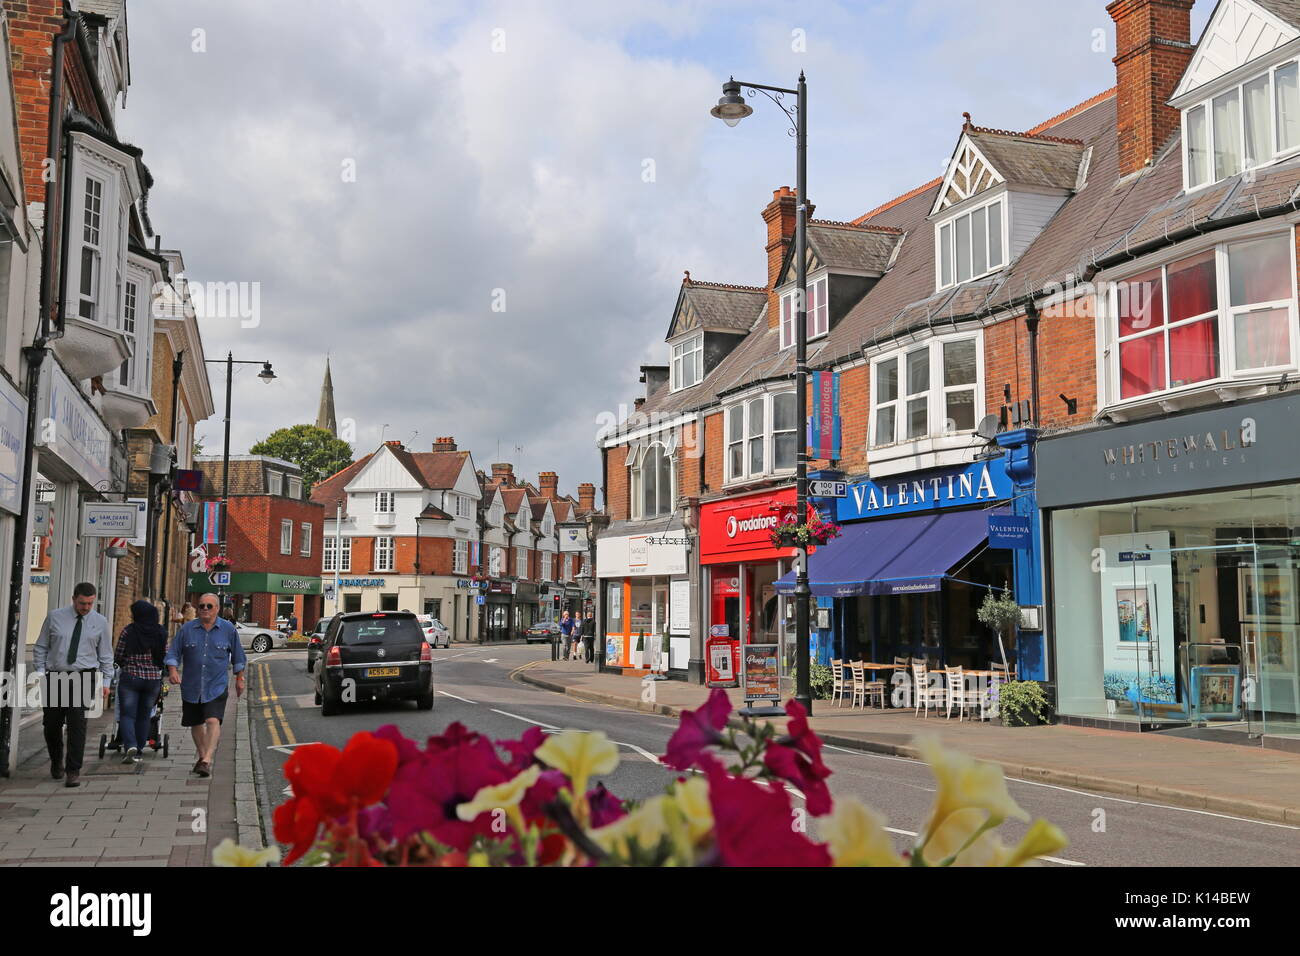 High Street, Weybridge, Surrey, England, Great Britain, United Kingdom, UK, Europe - Stock Image